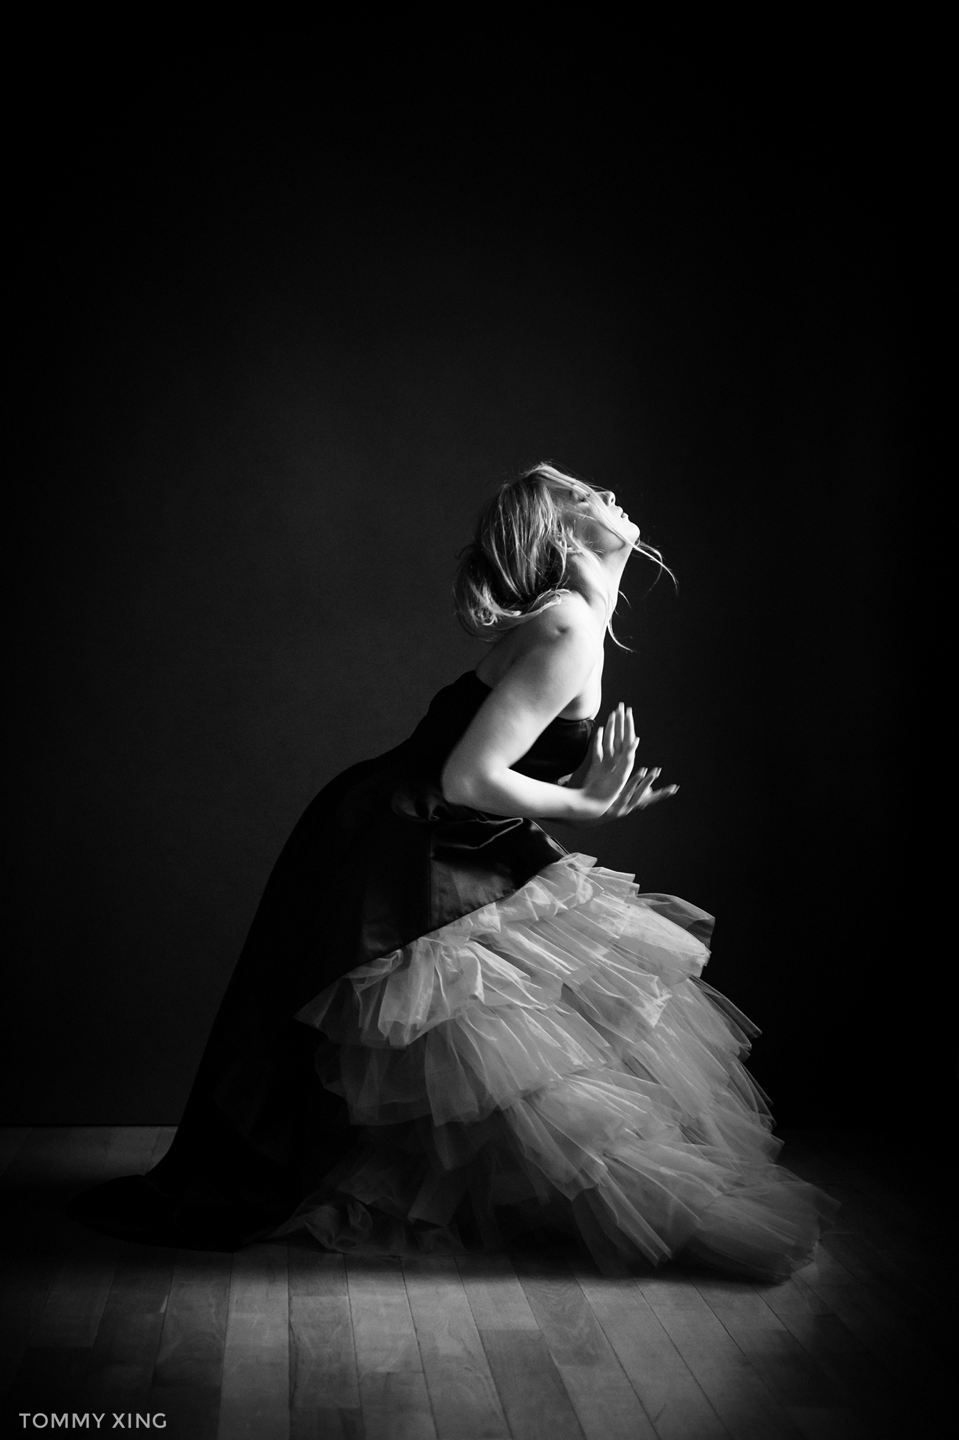 Los Angeles Dance photography - Haley - Tommy Xing19.JPG